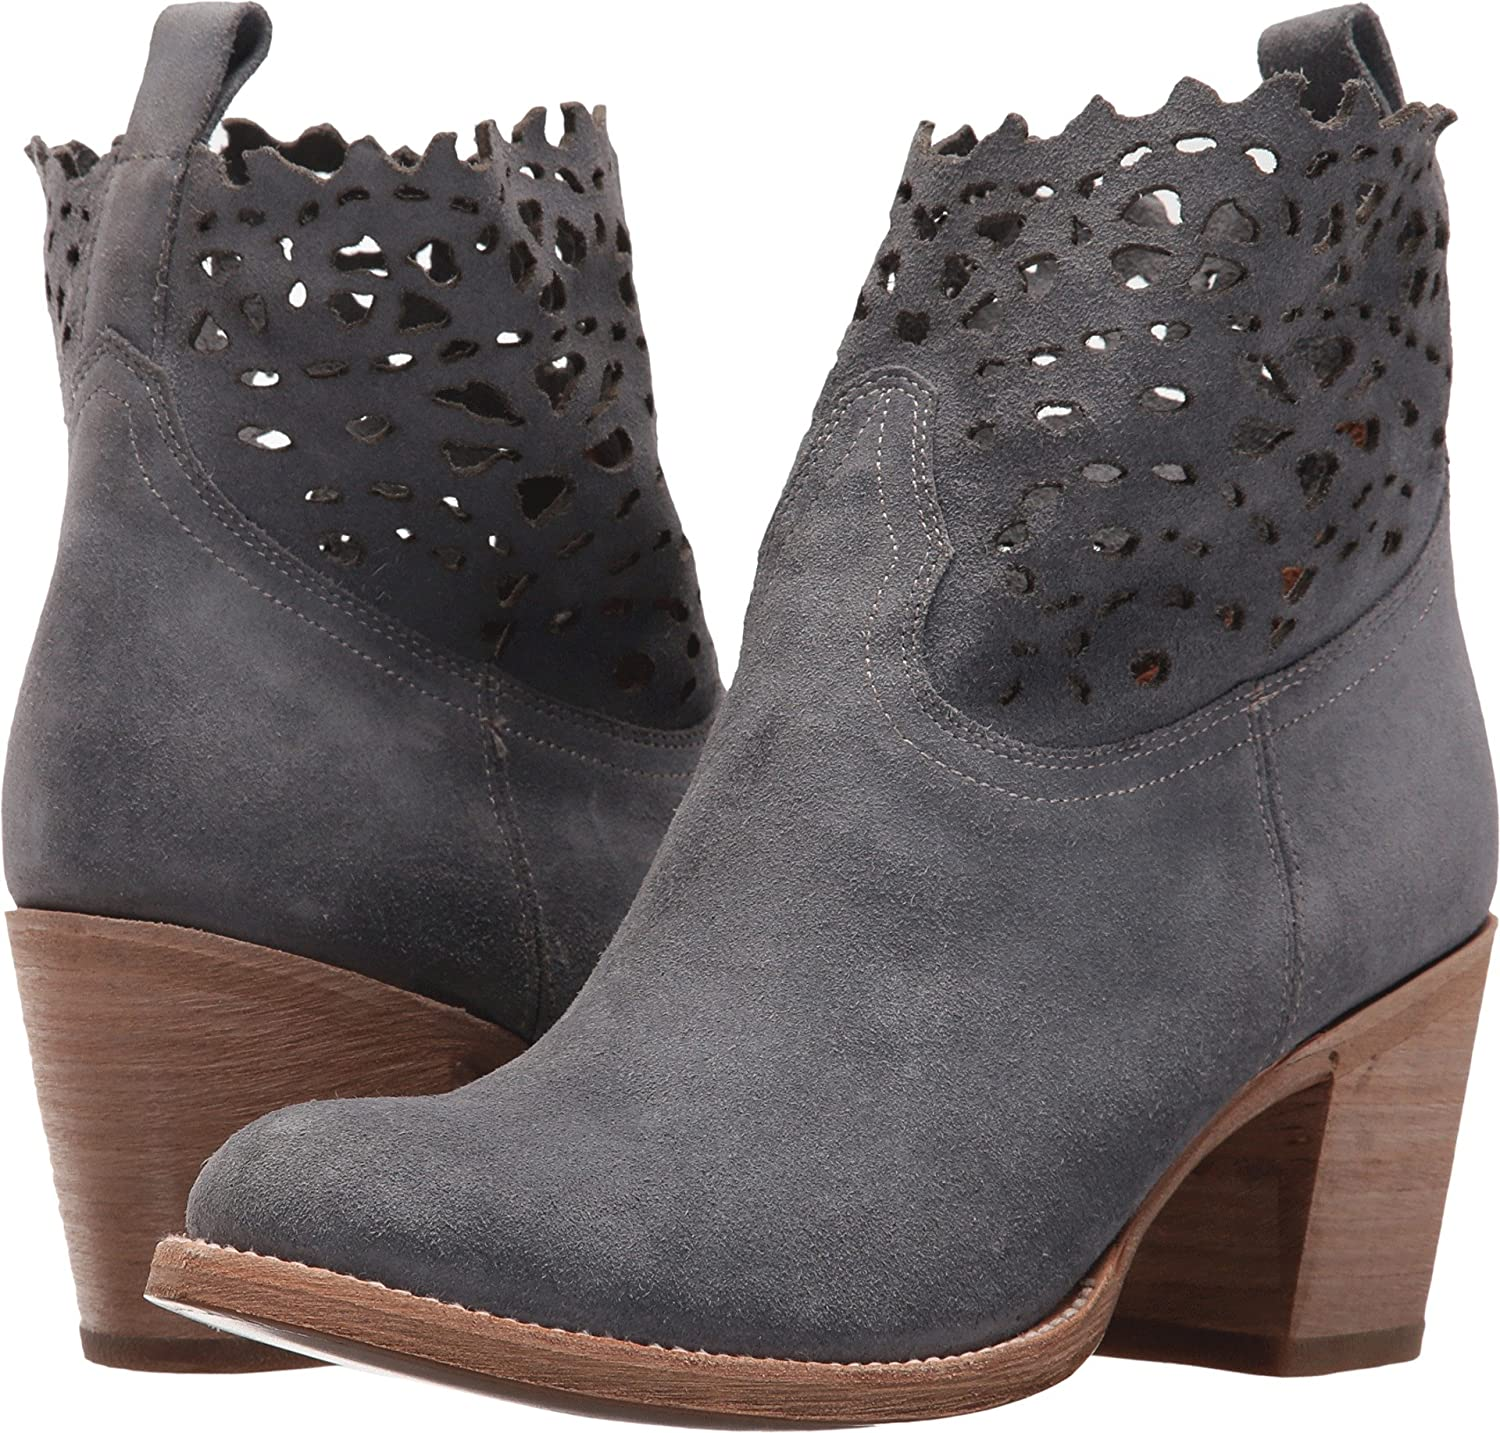 FRYE Women's Grey Suede Victoria Cut Short Boot Round Toe - 79117-Ept B075DHD2WF 8.5 B(M) US|Jeans Soft Oiled Suede